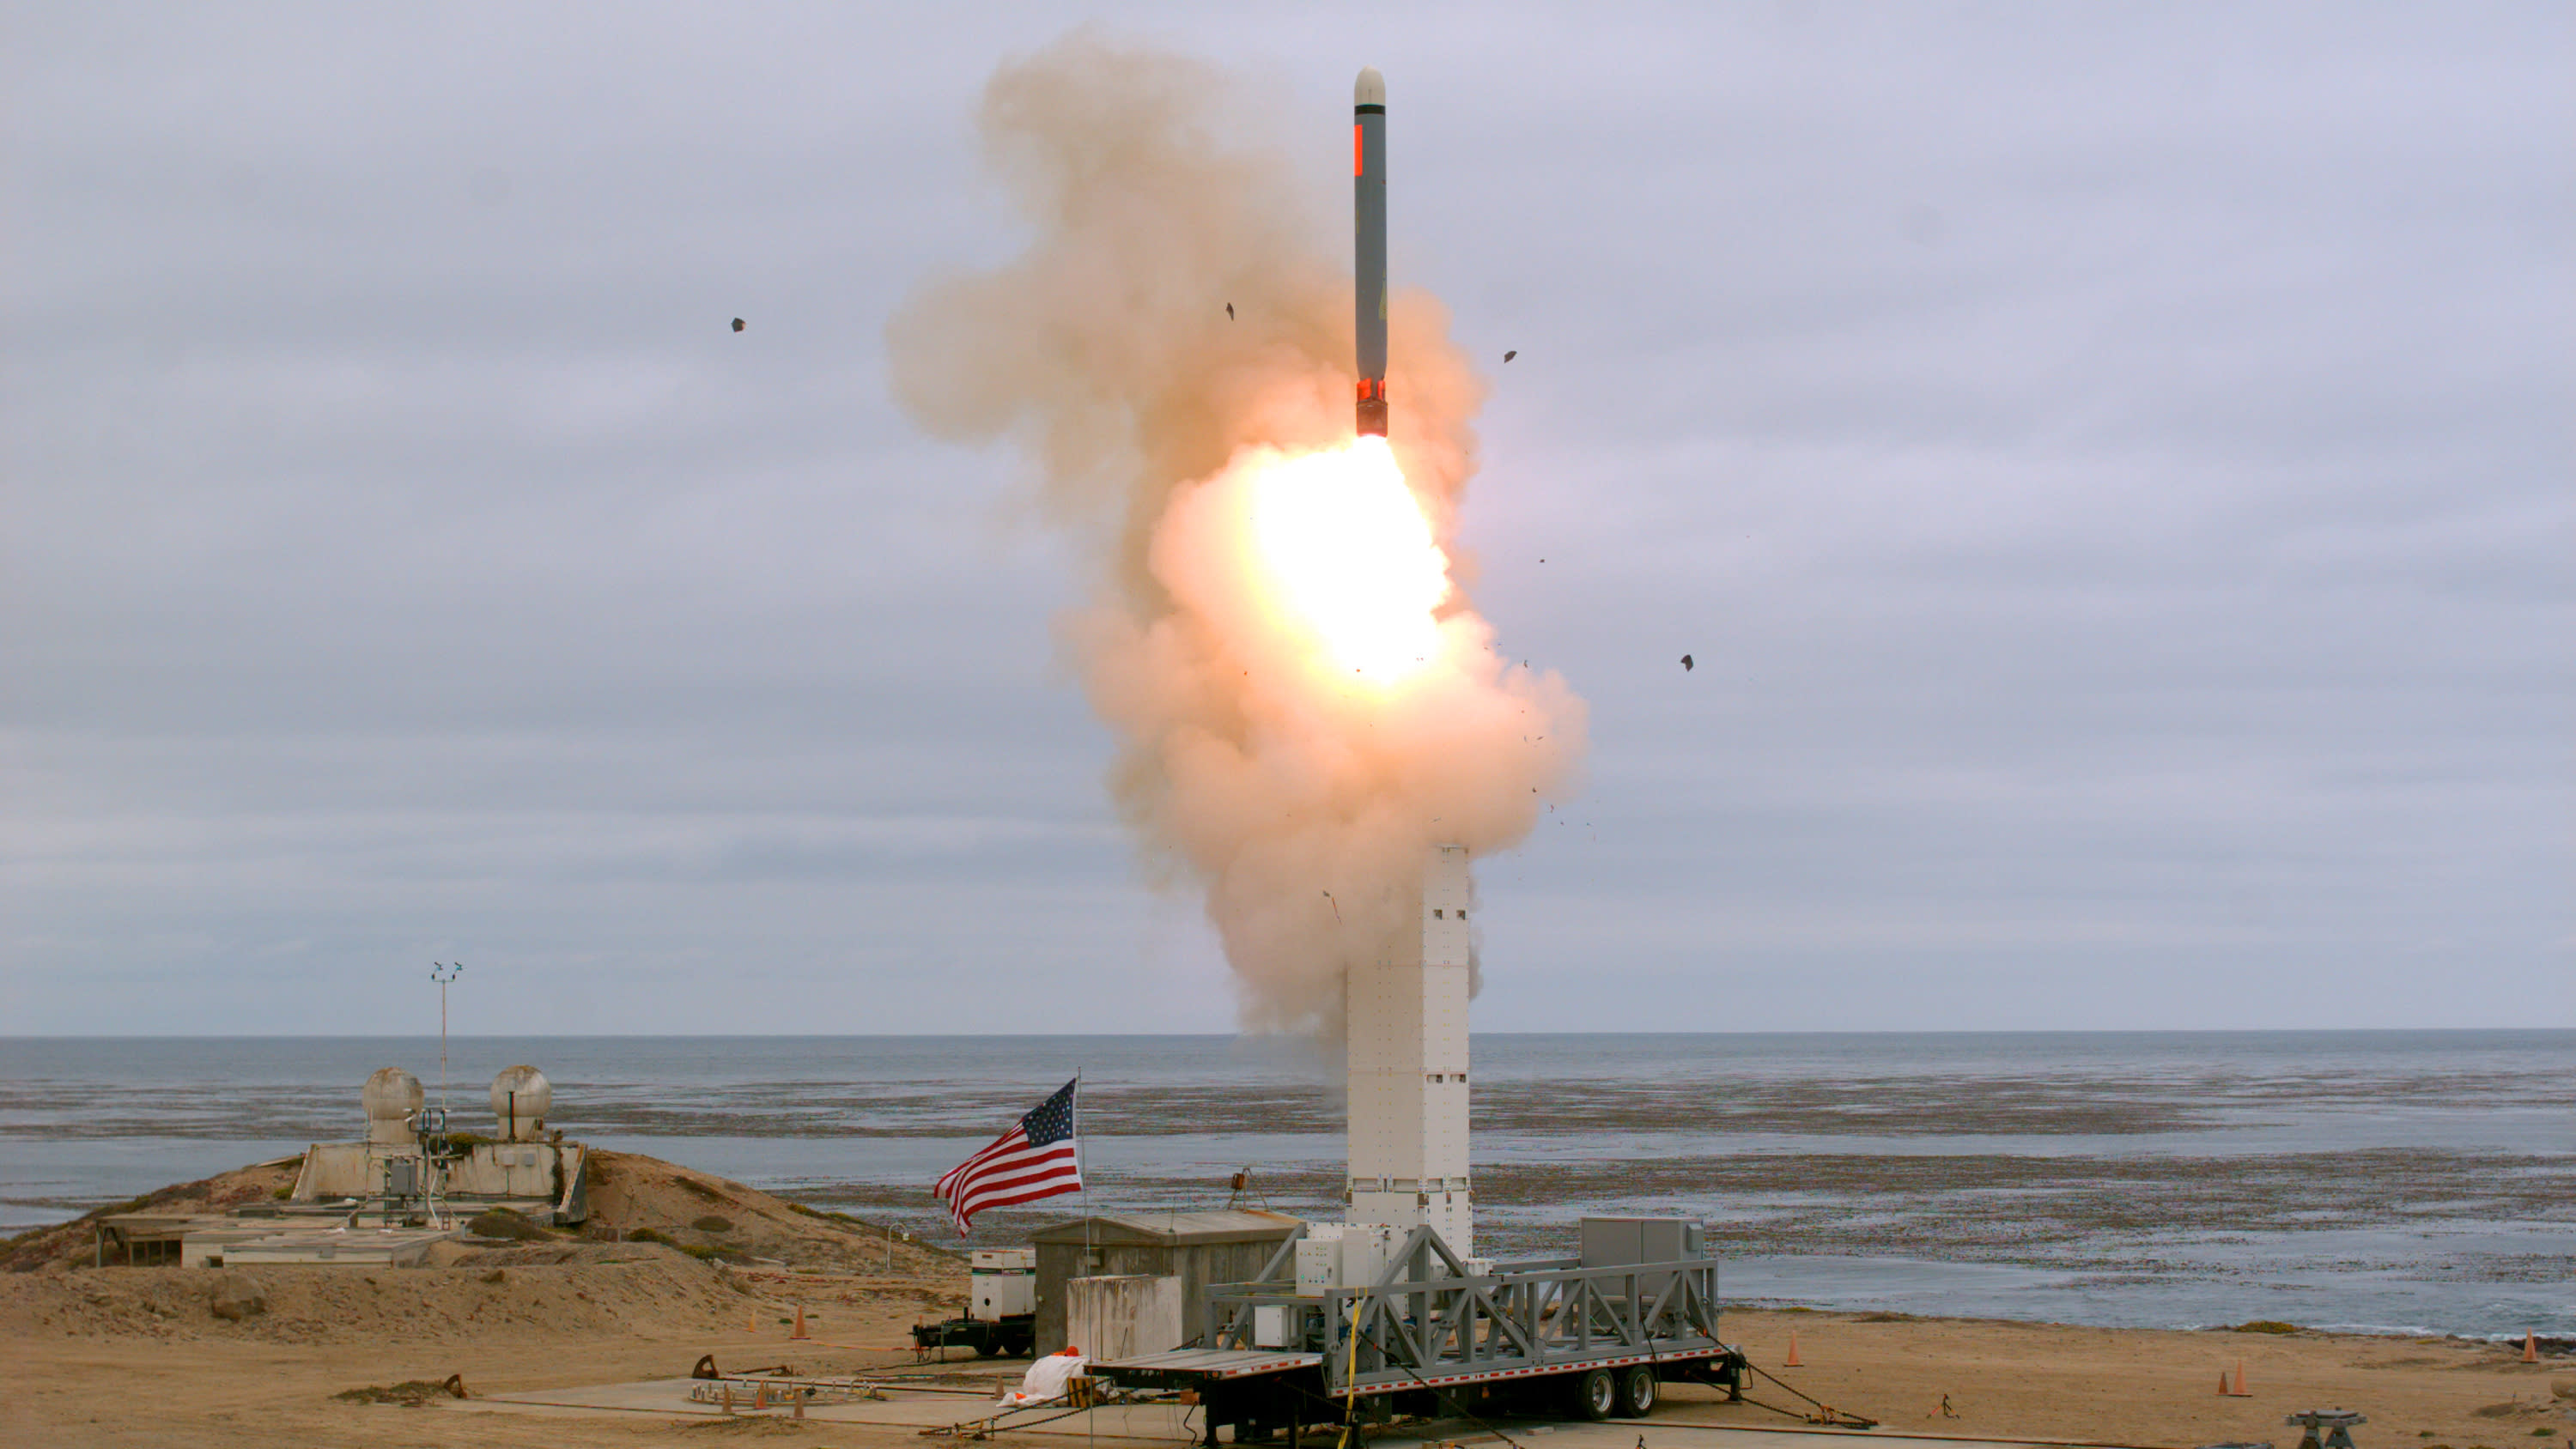 United States military tests previously banned missile